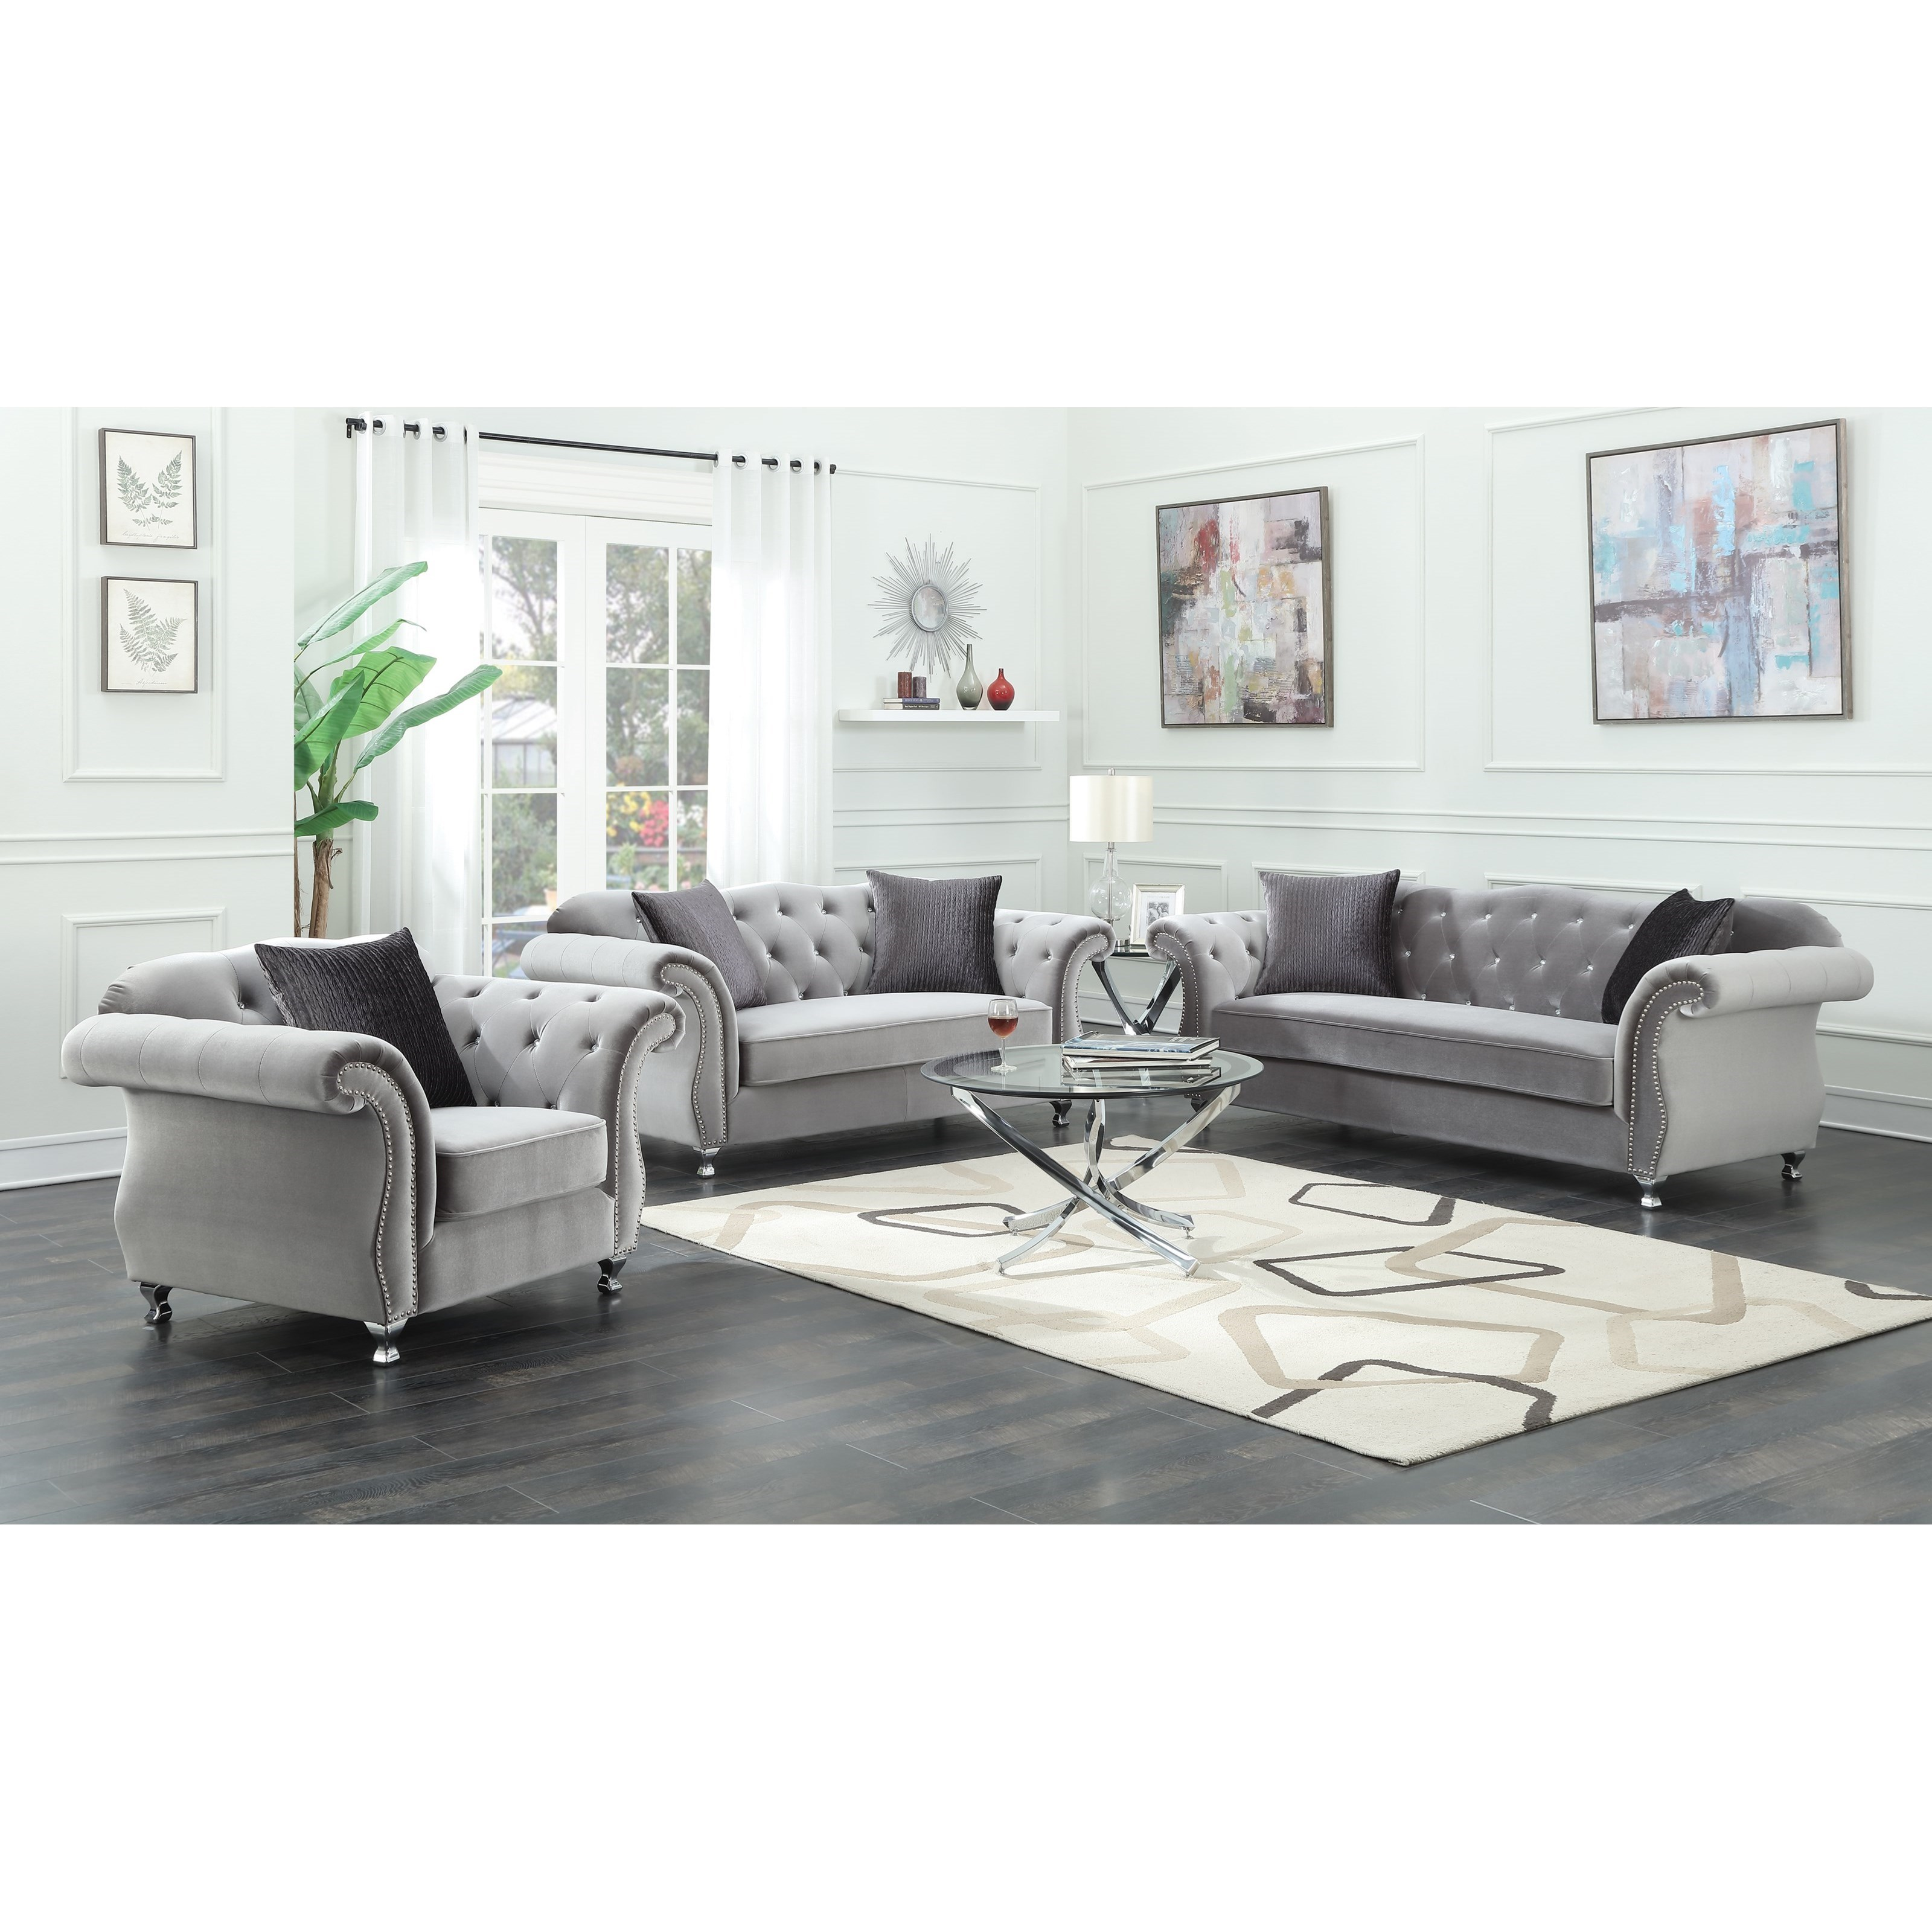 Frostine Stationary Living Room Group by Coaster at A1 Furniture & Mattress